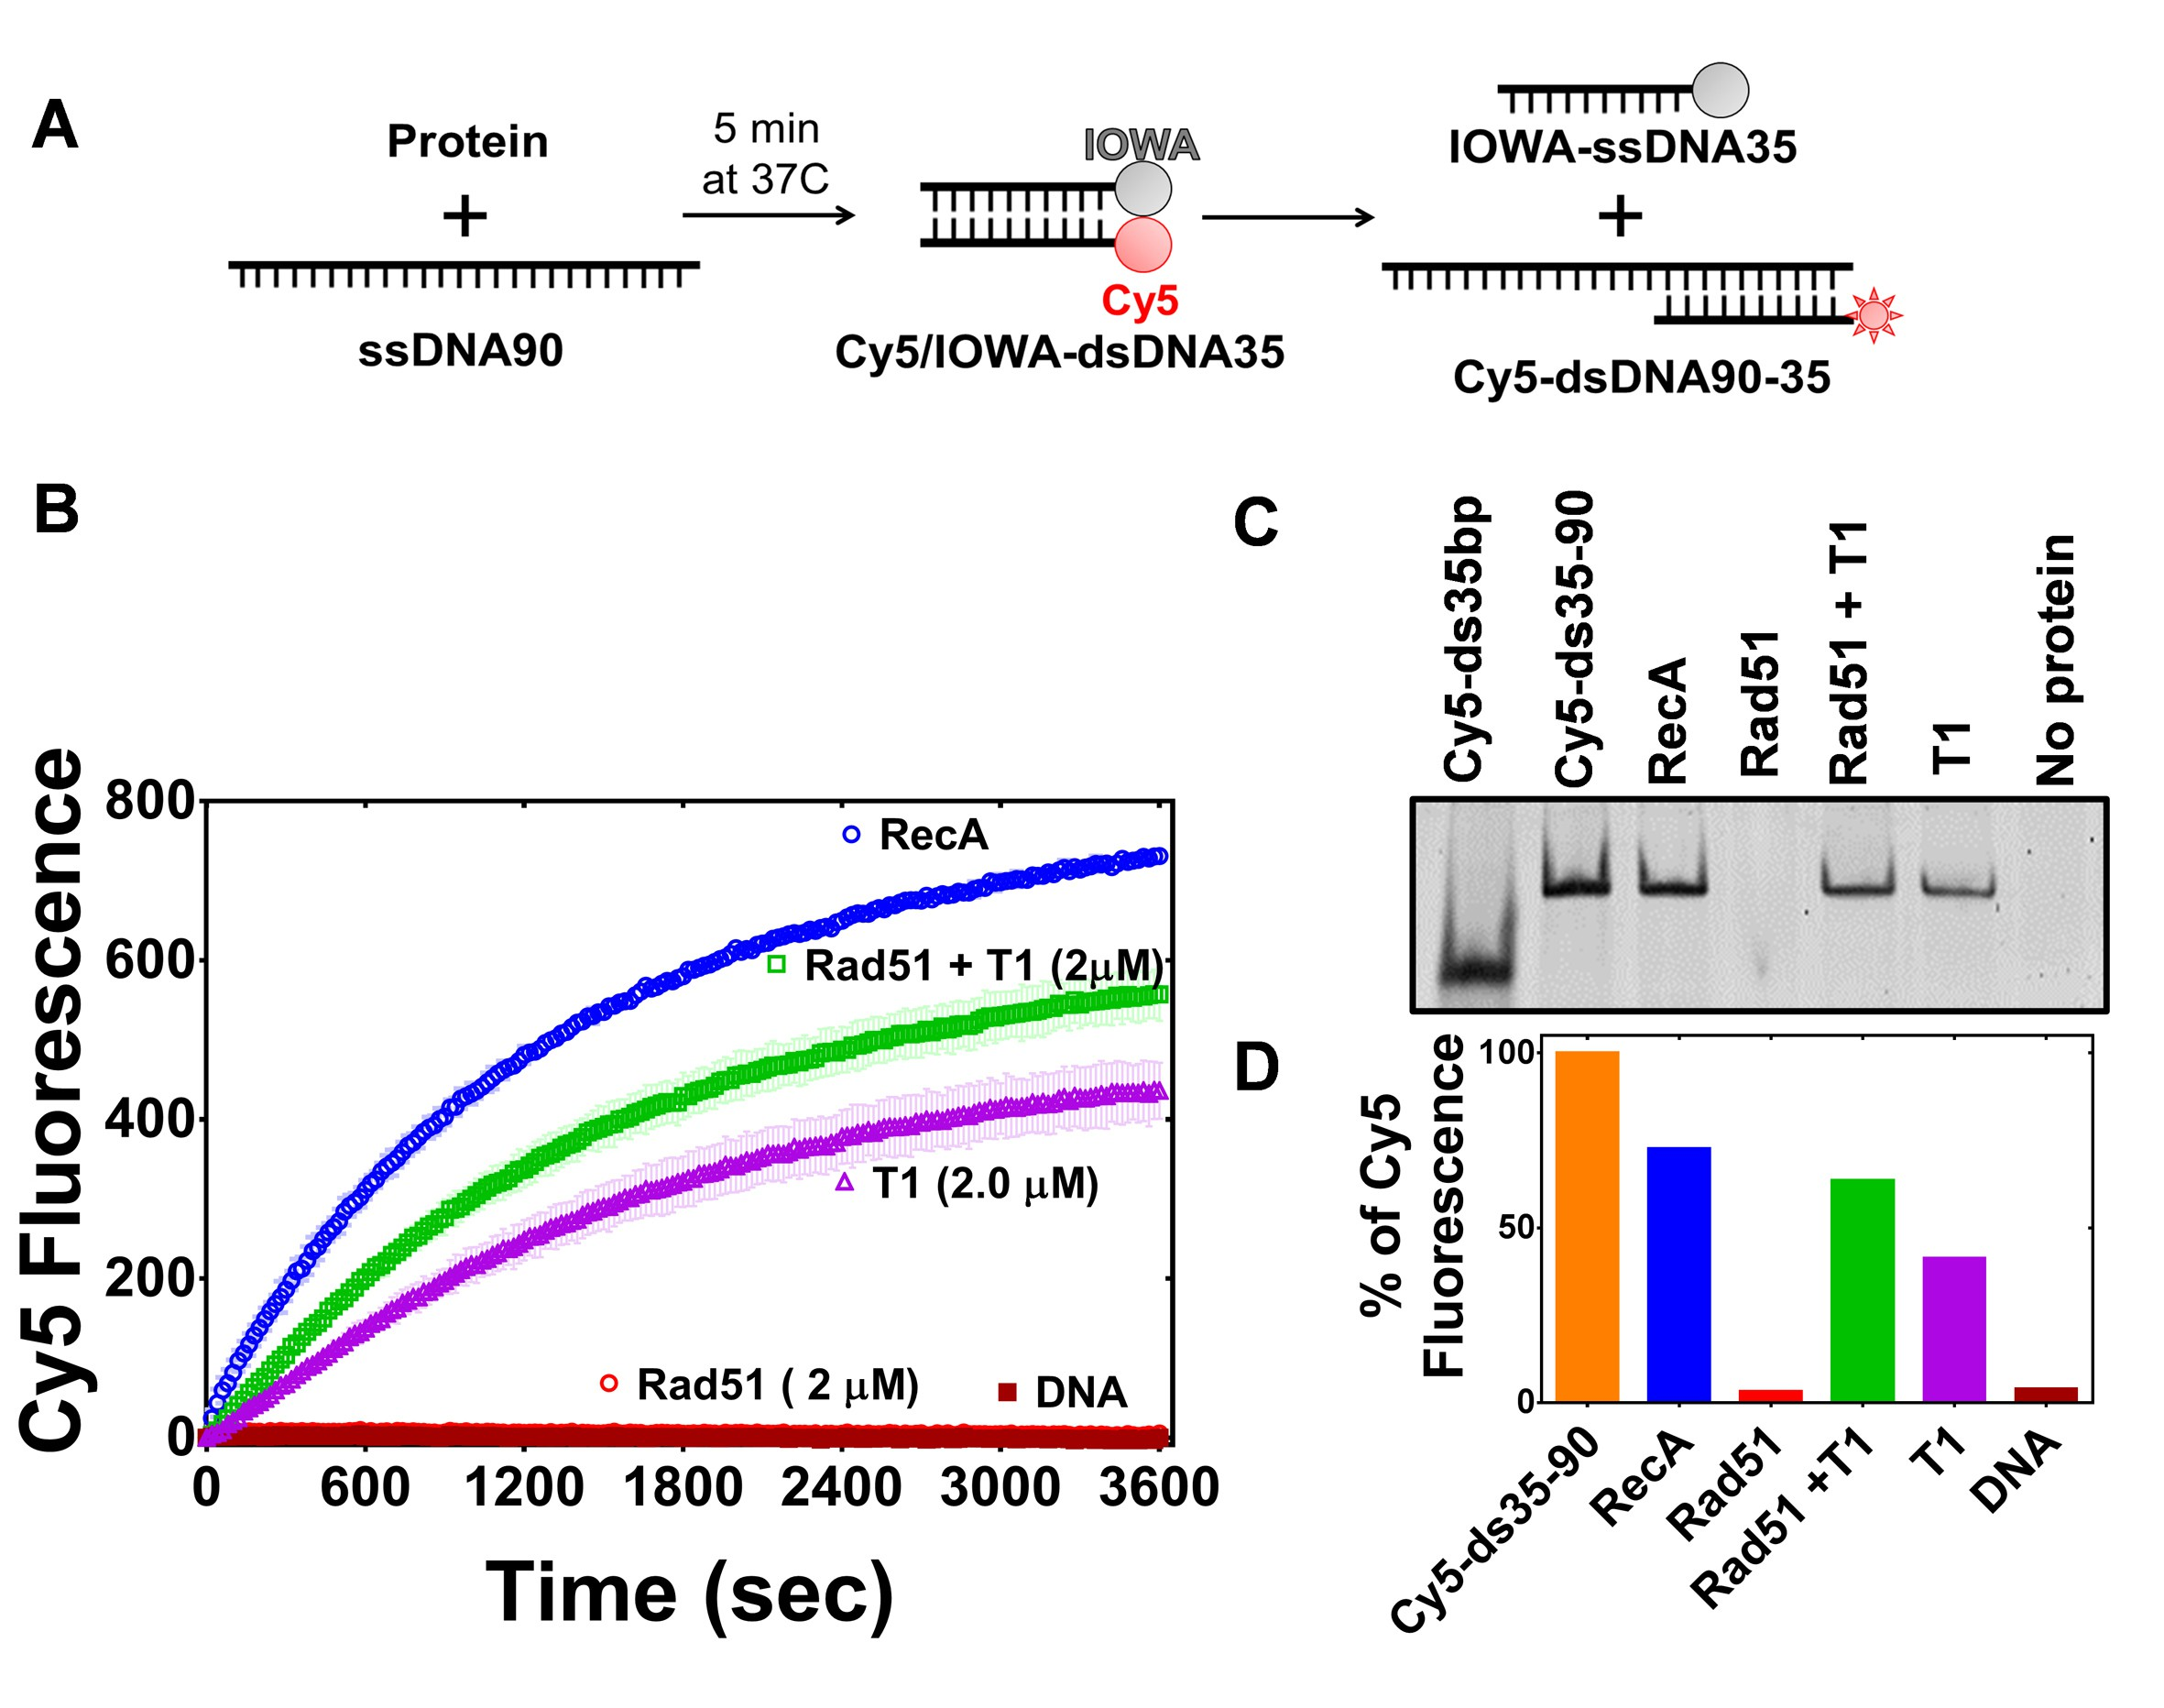 Novel Rna And Dna Strand Exchange Activity Of The Palb2 Dna Binding Domain And Its Critical Role For Dna Repair In Cells Elife